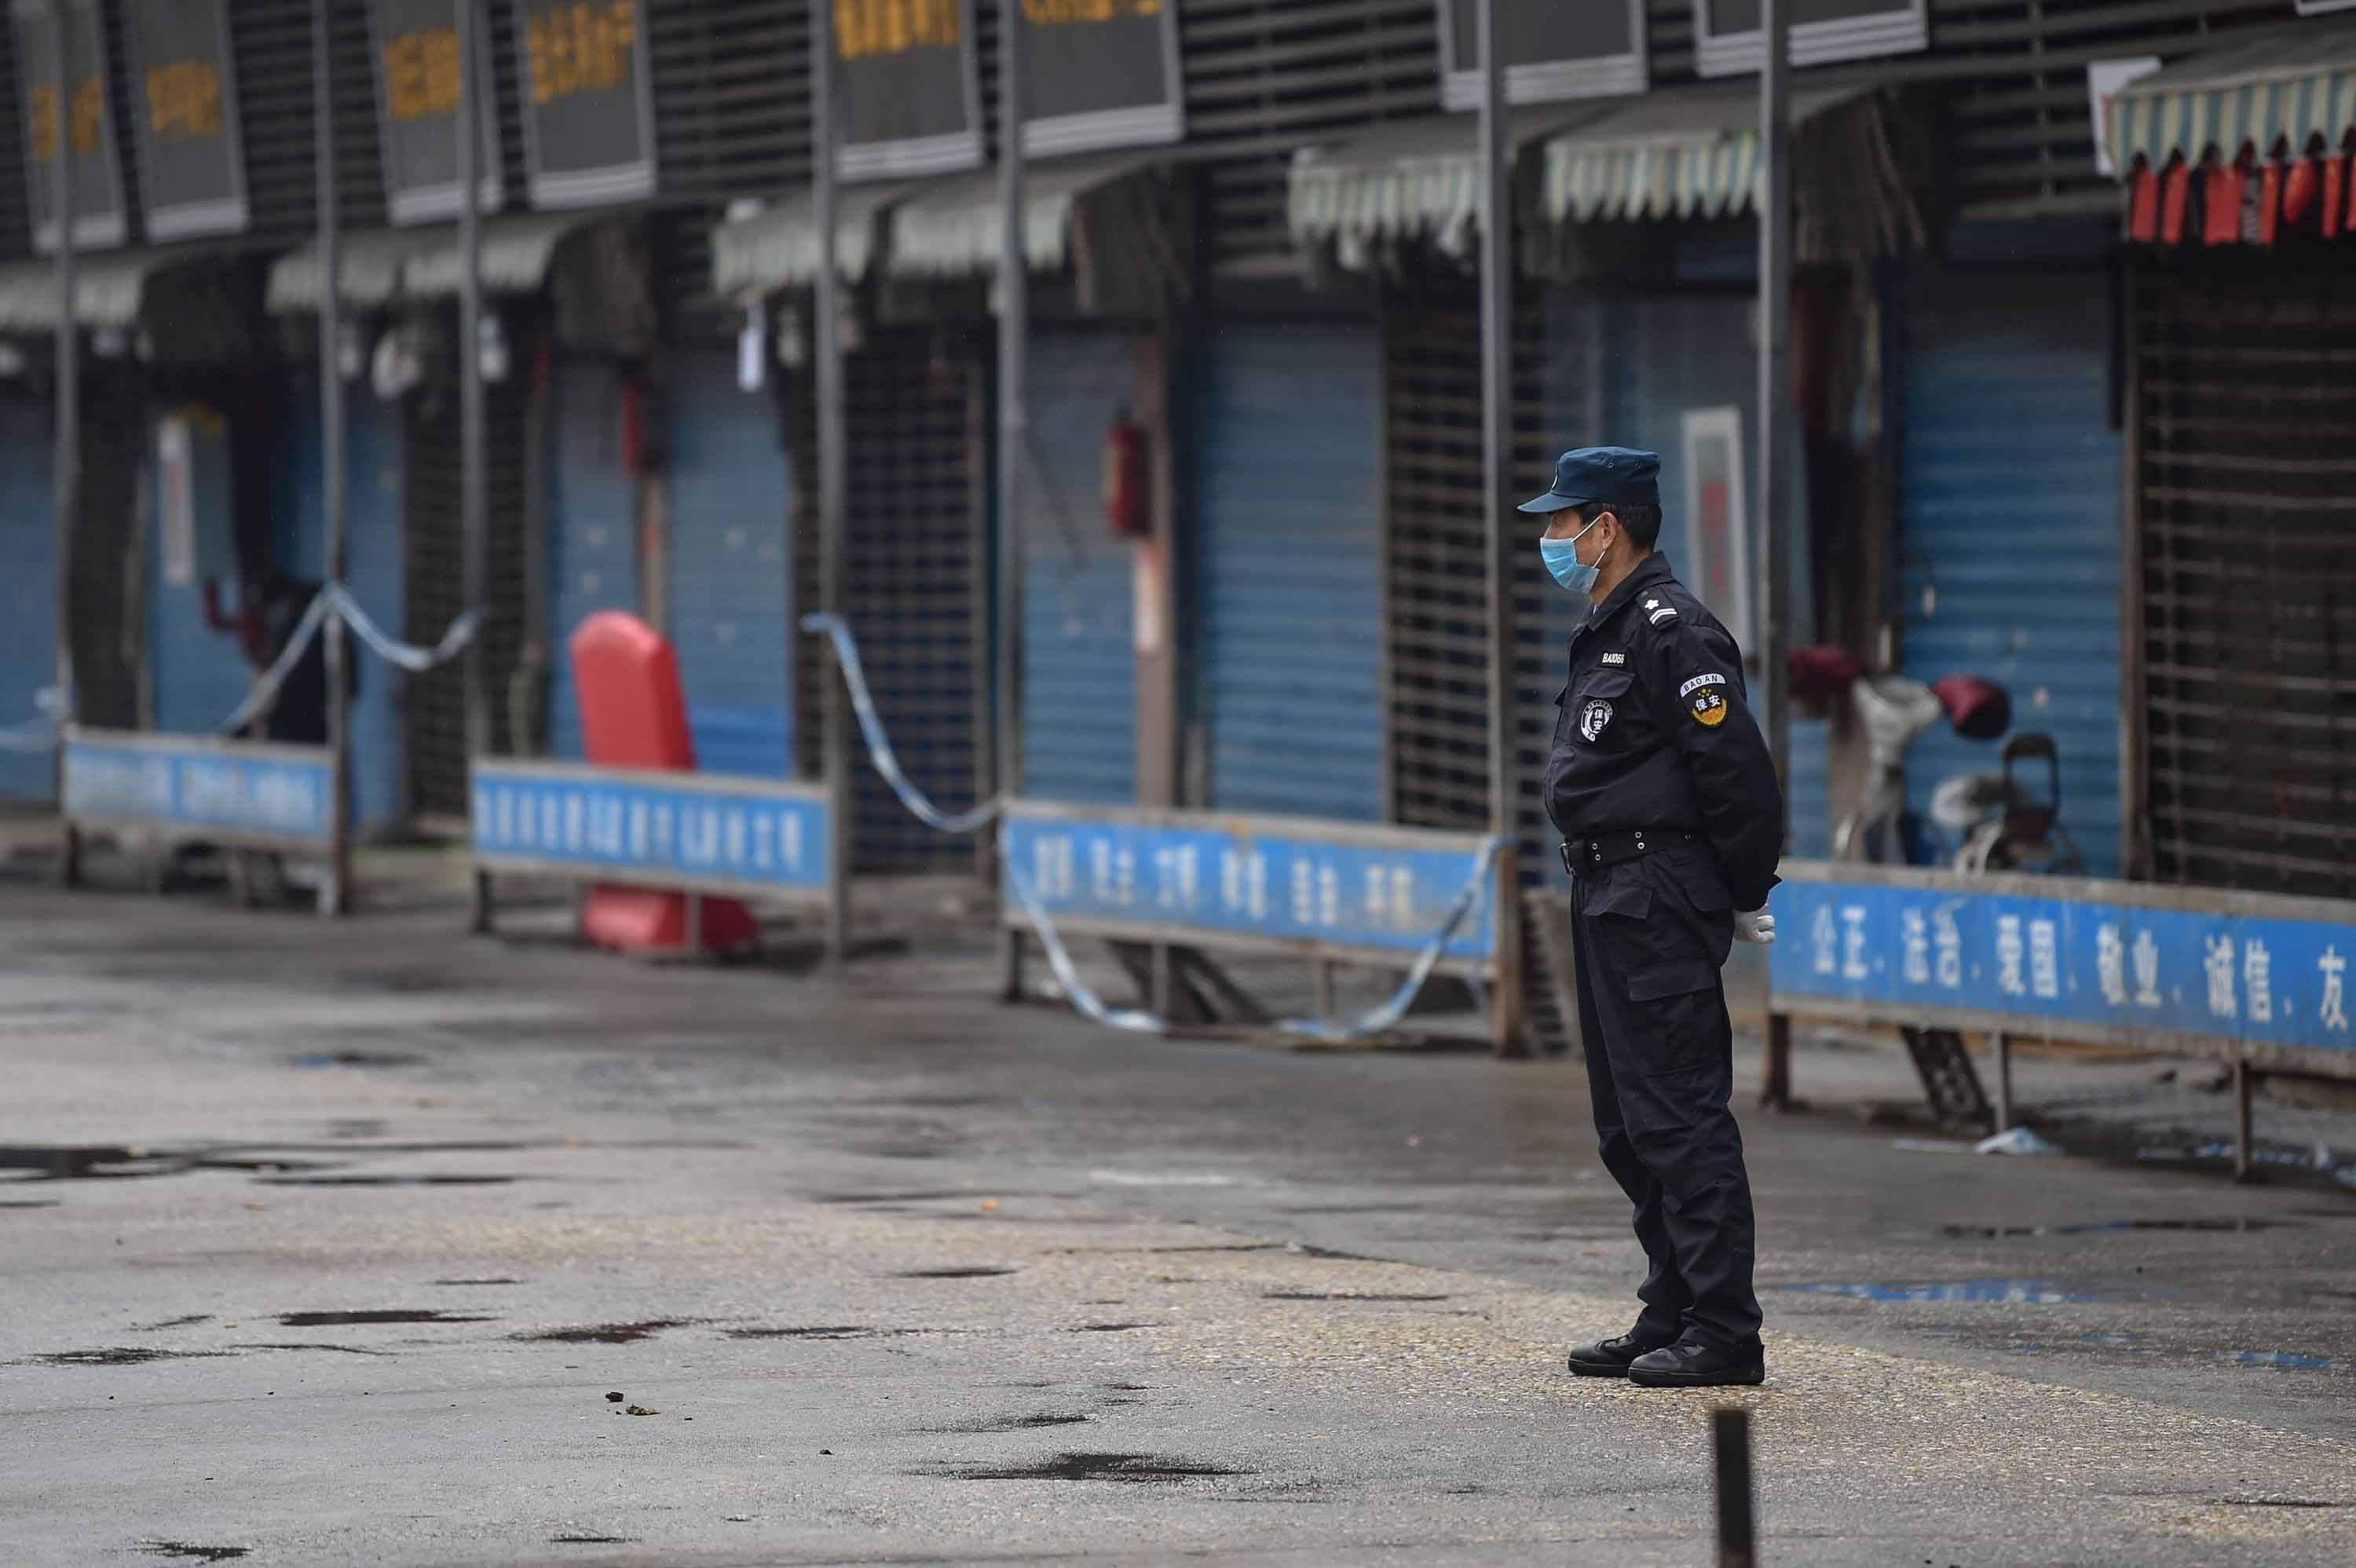 A security guard stands outside the Huanan Seafood Wholesale Market in Wuhan on January 24. Chinese health authorities closed themarketafter it was discovered that wild animals sold there may be the source of the virus.